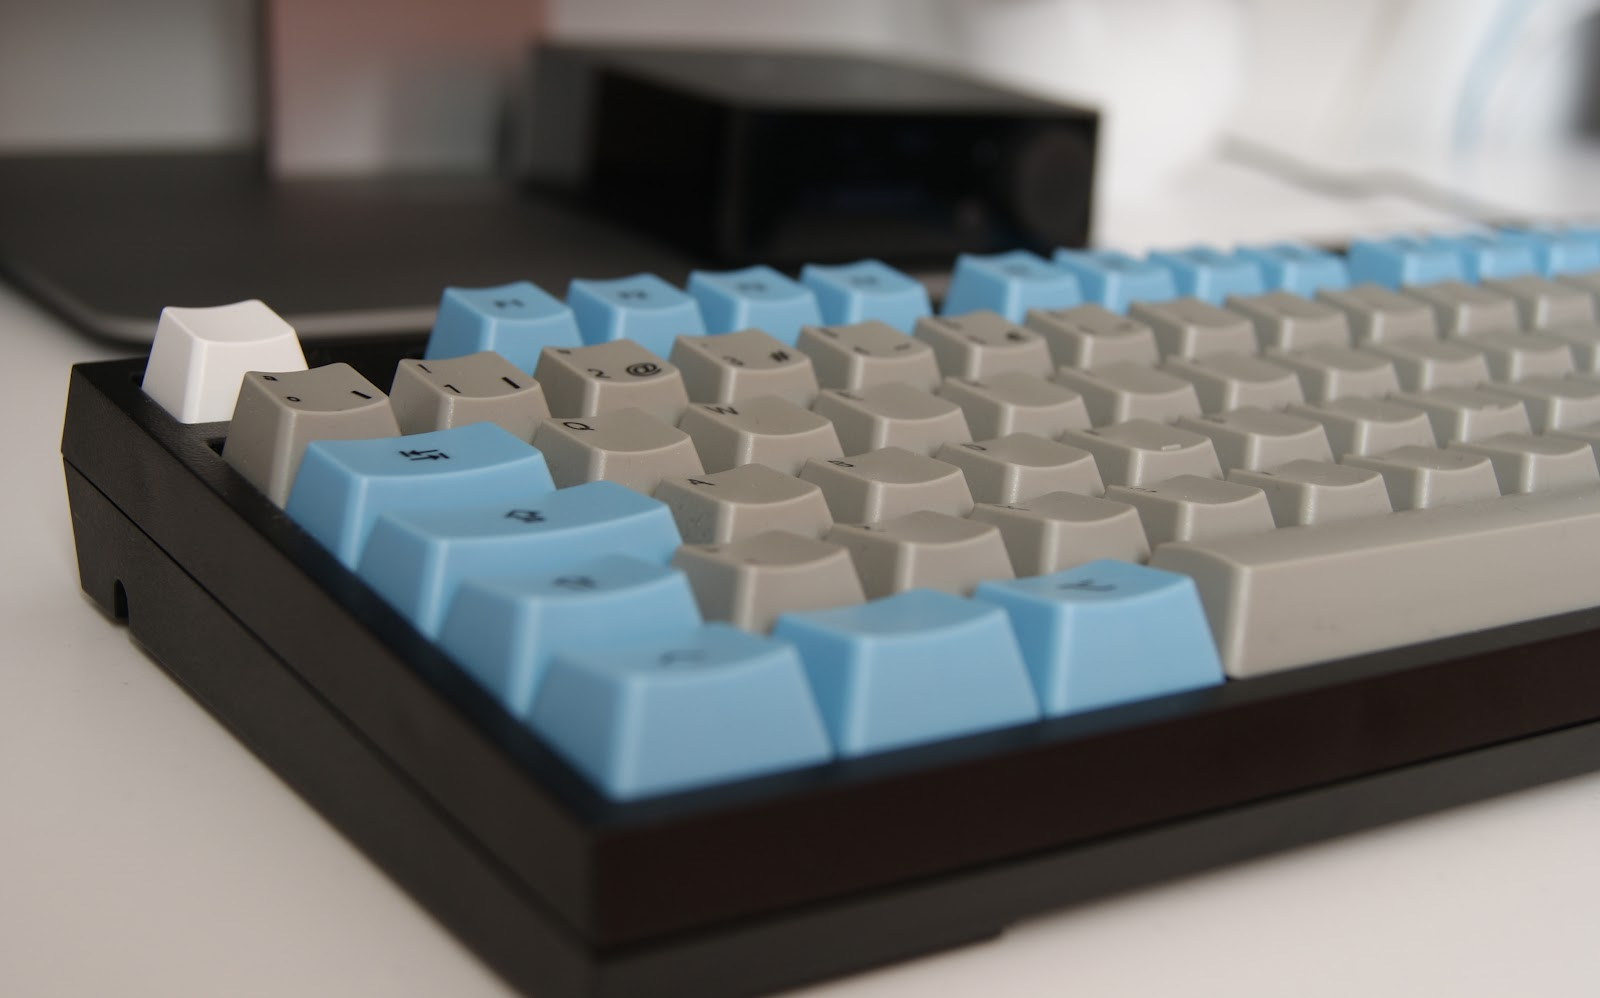 WASD Keyboards - by dPunisher